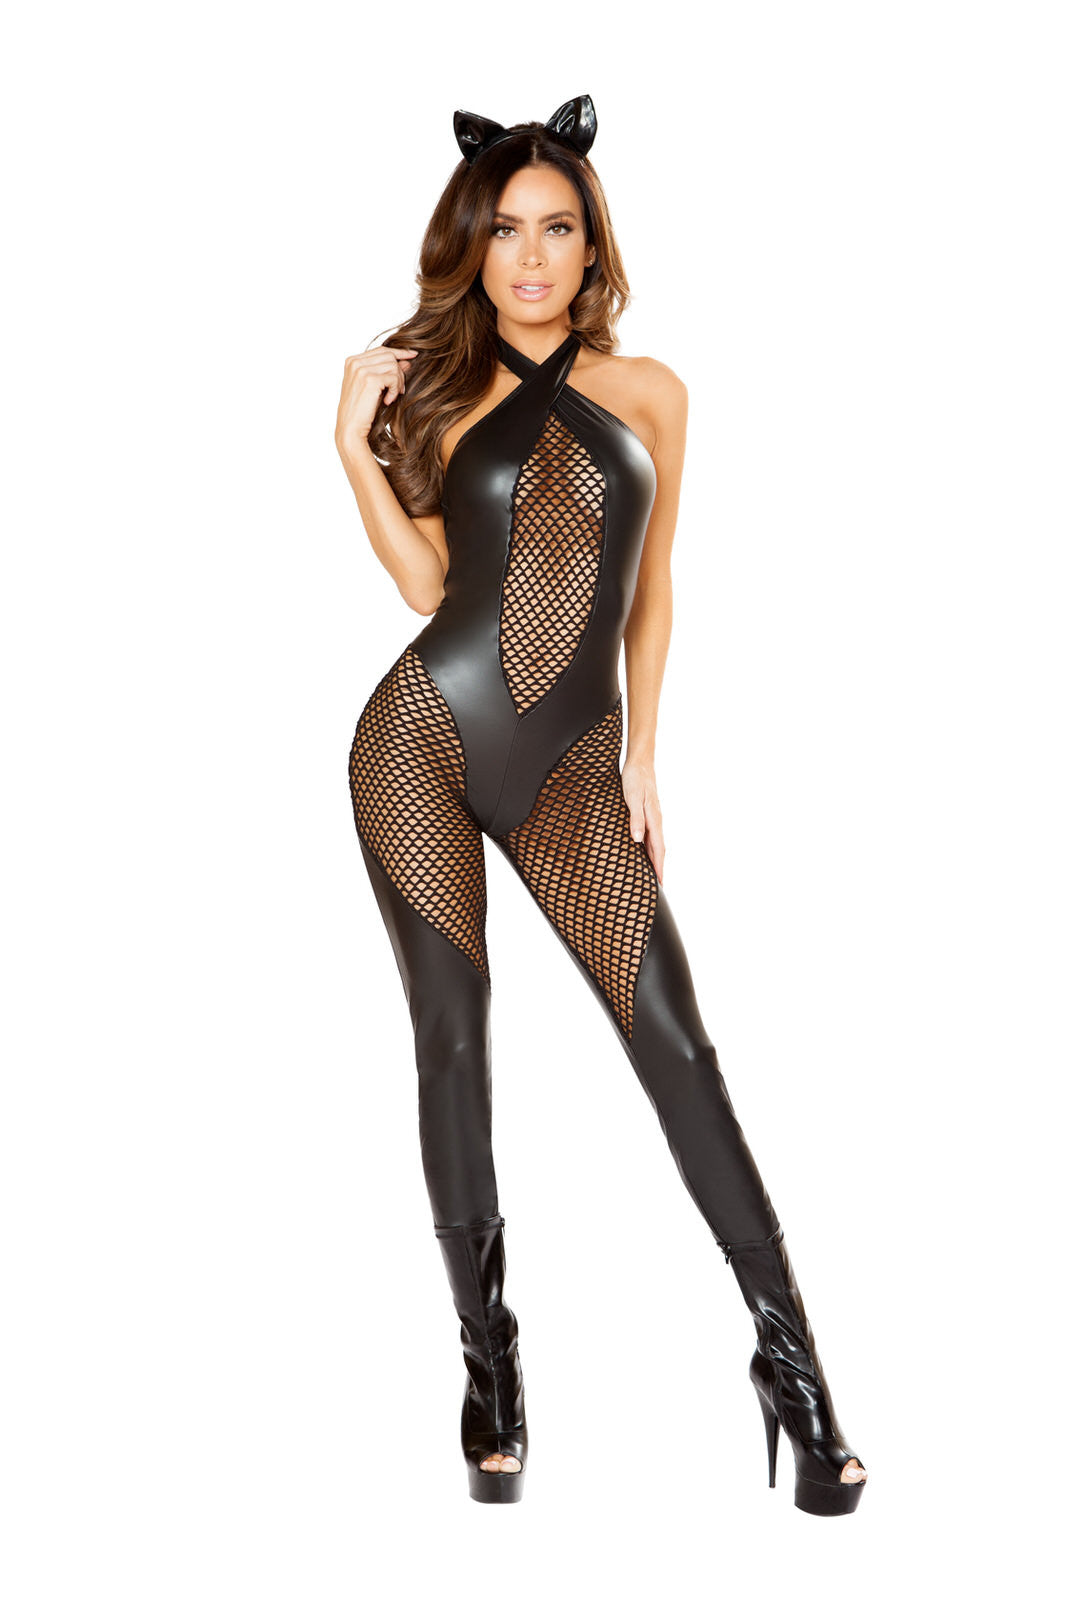 10120 - 3pc Naughty Kitty ${description} | Roma Costume and Roma Confidential wholesale manufacturer of Women Apparel bulk world wide wholesale and world wide drop ship services for Adult Halloween Costumes, Sexy and Elegant Lingerie, Rave Clothing, Club wear, and Christmas Costumes. Costumes, Roma Costume, Inc., Roma Costume, Roma Confidential, Wholesale clothing, drop ship, drop ship service, Wholesale Lingerie, Wholesale Adult Halloween Costumes, Rave Clothing, EDM Clothing, Festival Wear, Christmas Costumes, Clubwear, Club wear.